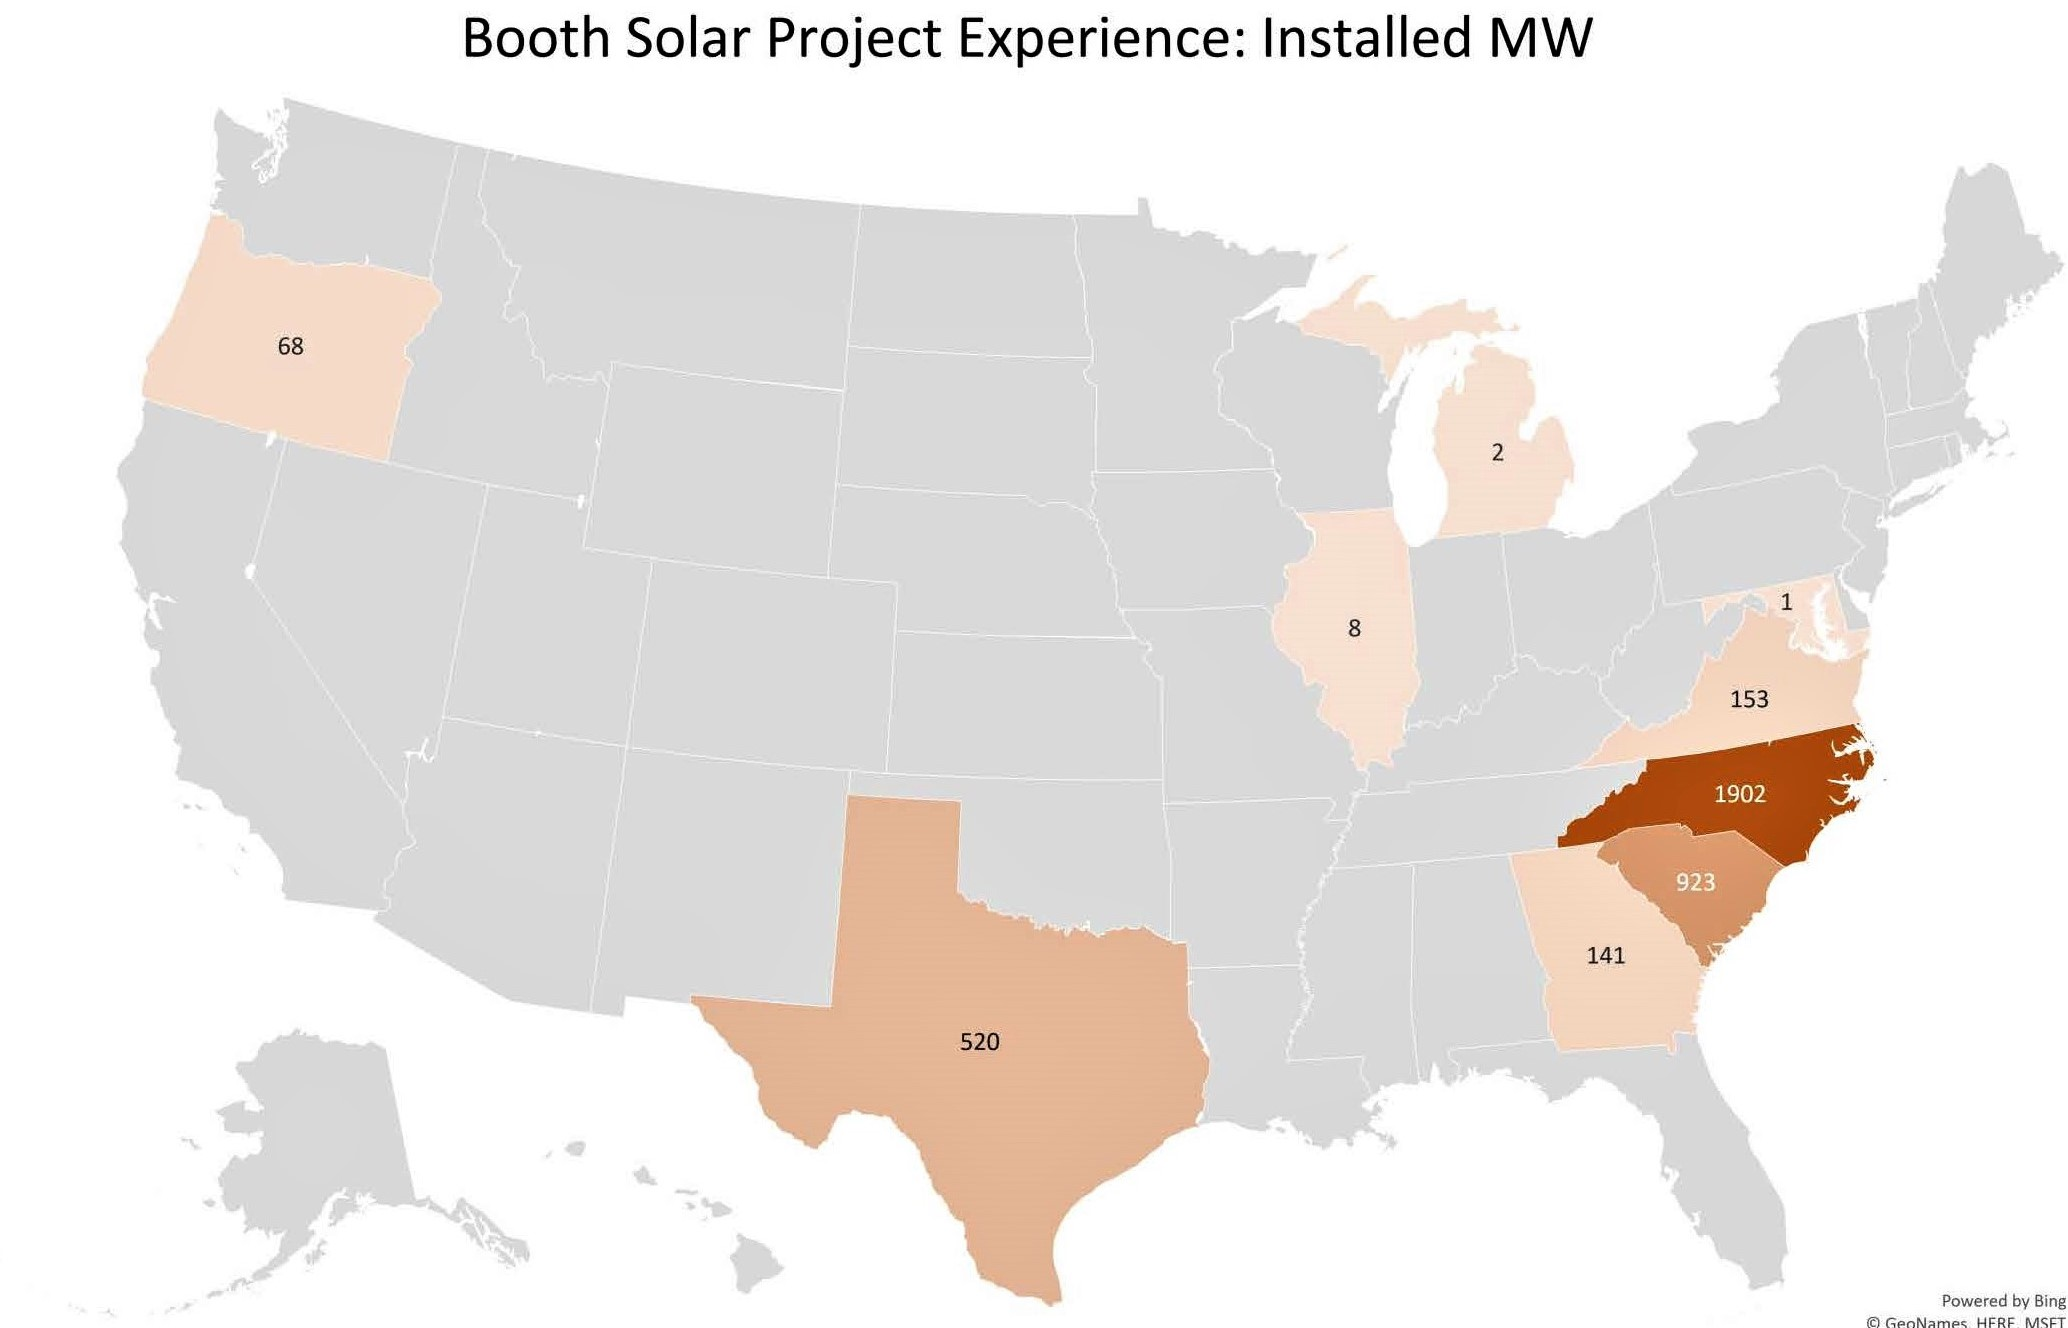 Booth_Solar_Project_Experience_Installed_MW